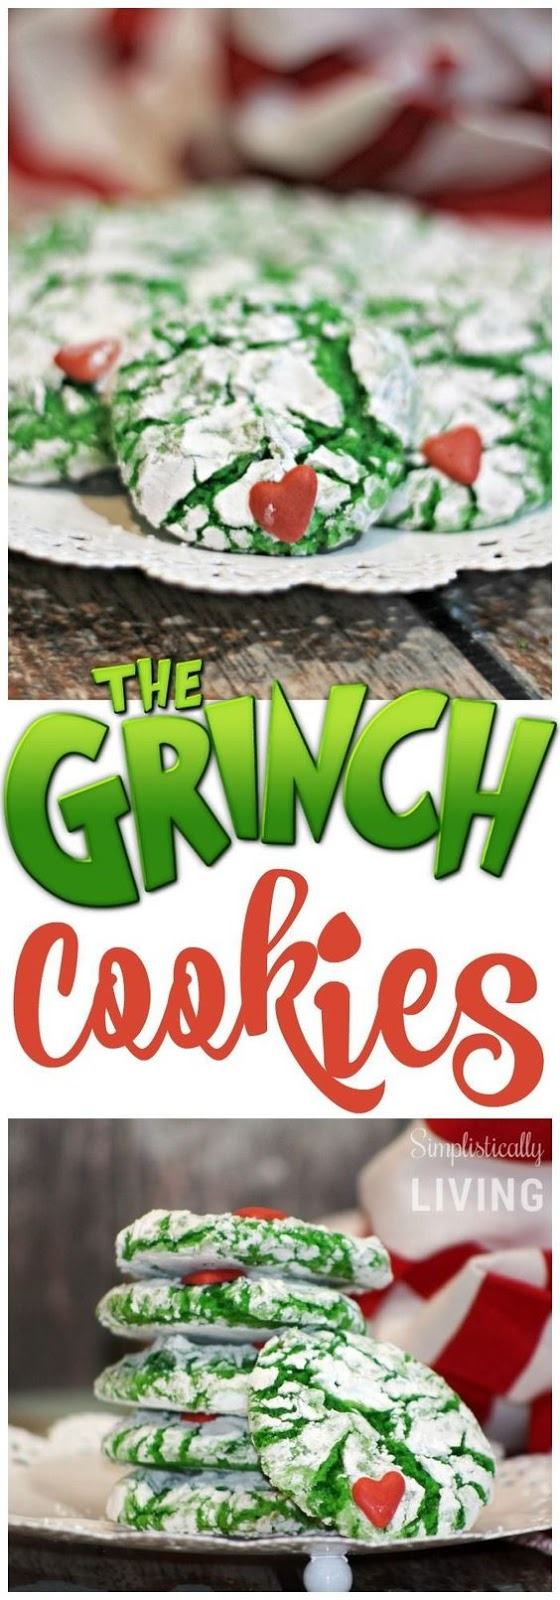 CRINKLY, CRANKY, GRINCH COOKIES